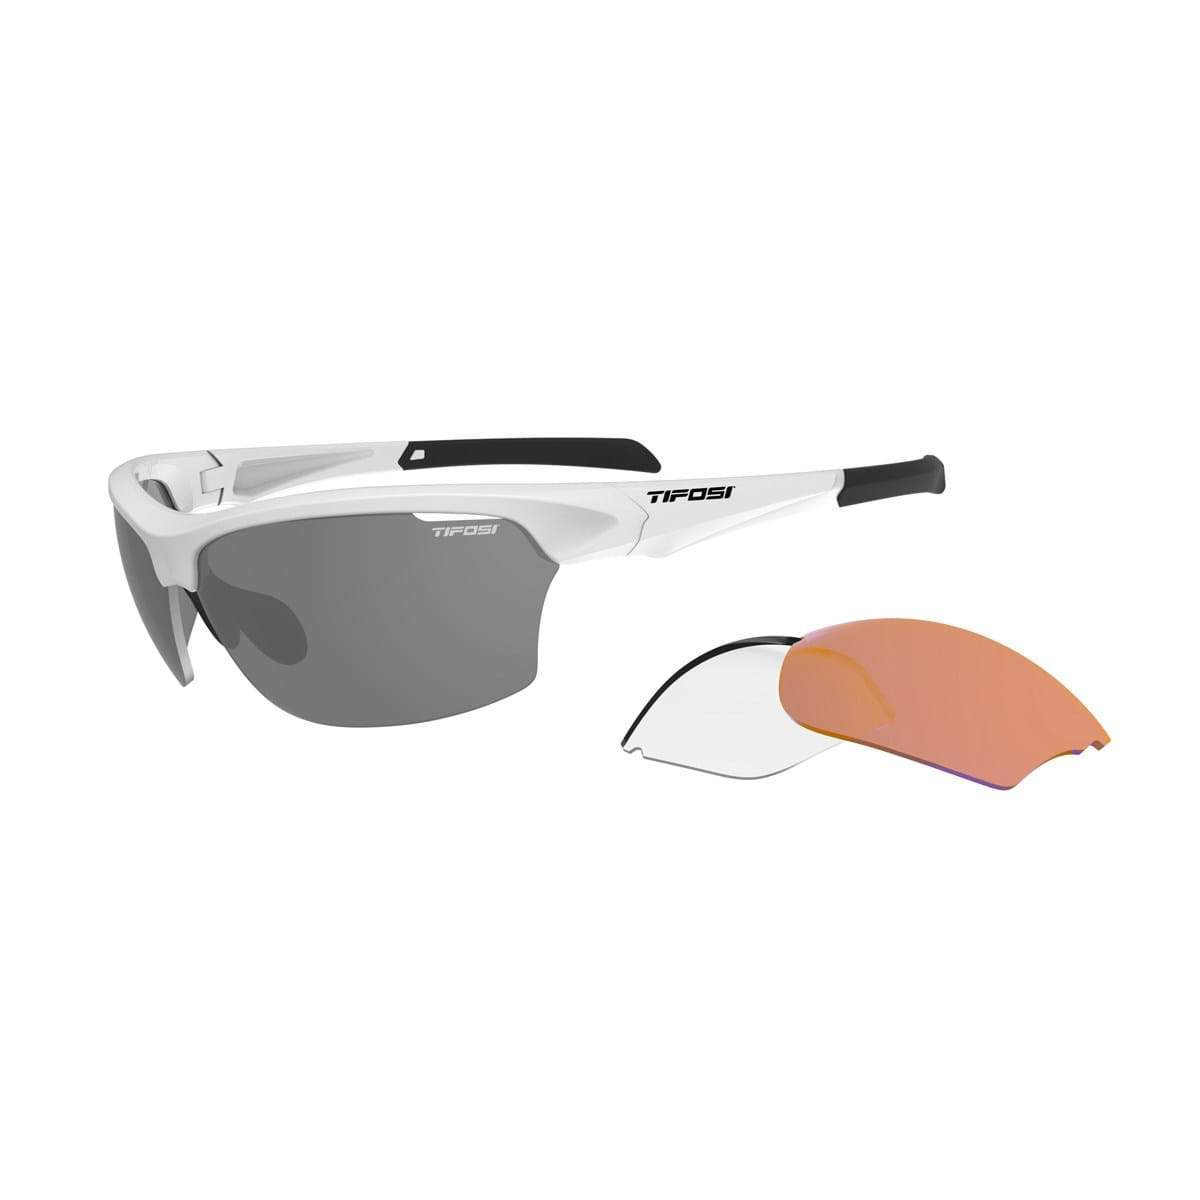 422a89d6fcd6 Tifosi Cycle Clothing   Sunglasses TIFOSI INTENSE INTERCHANGEABLE LENS  SUNGLASSES